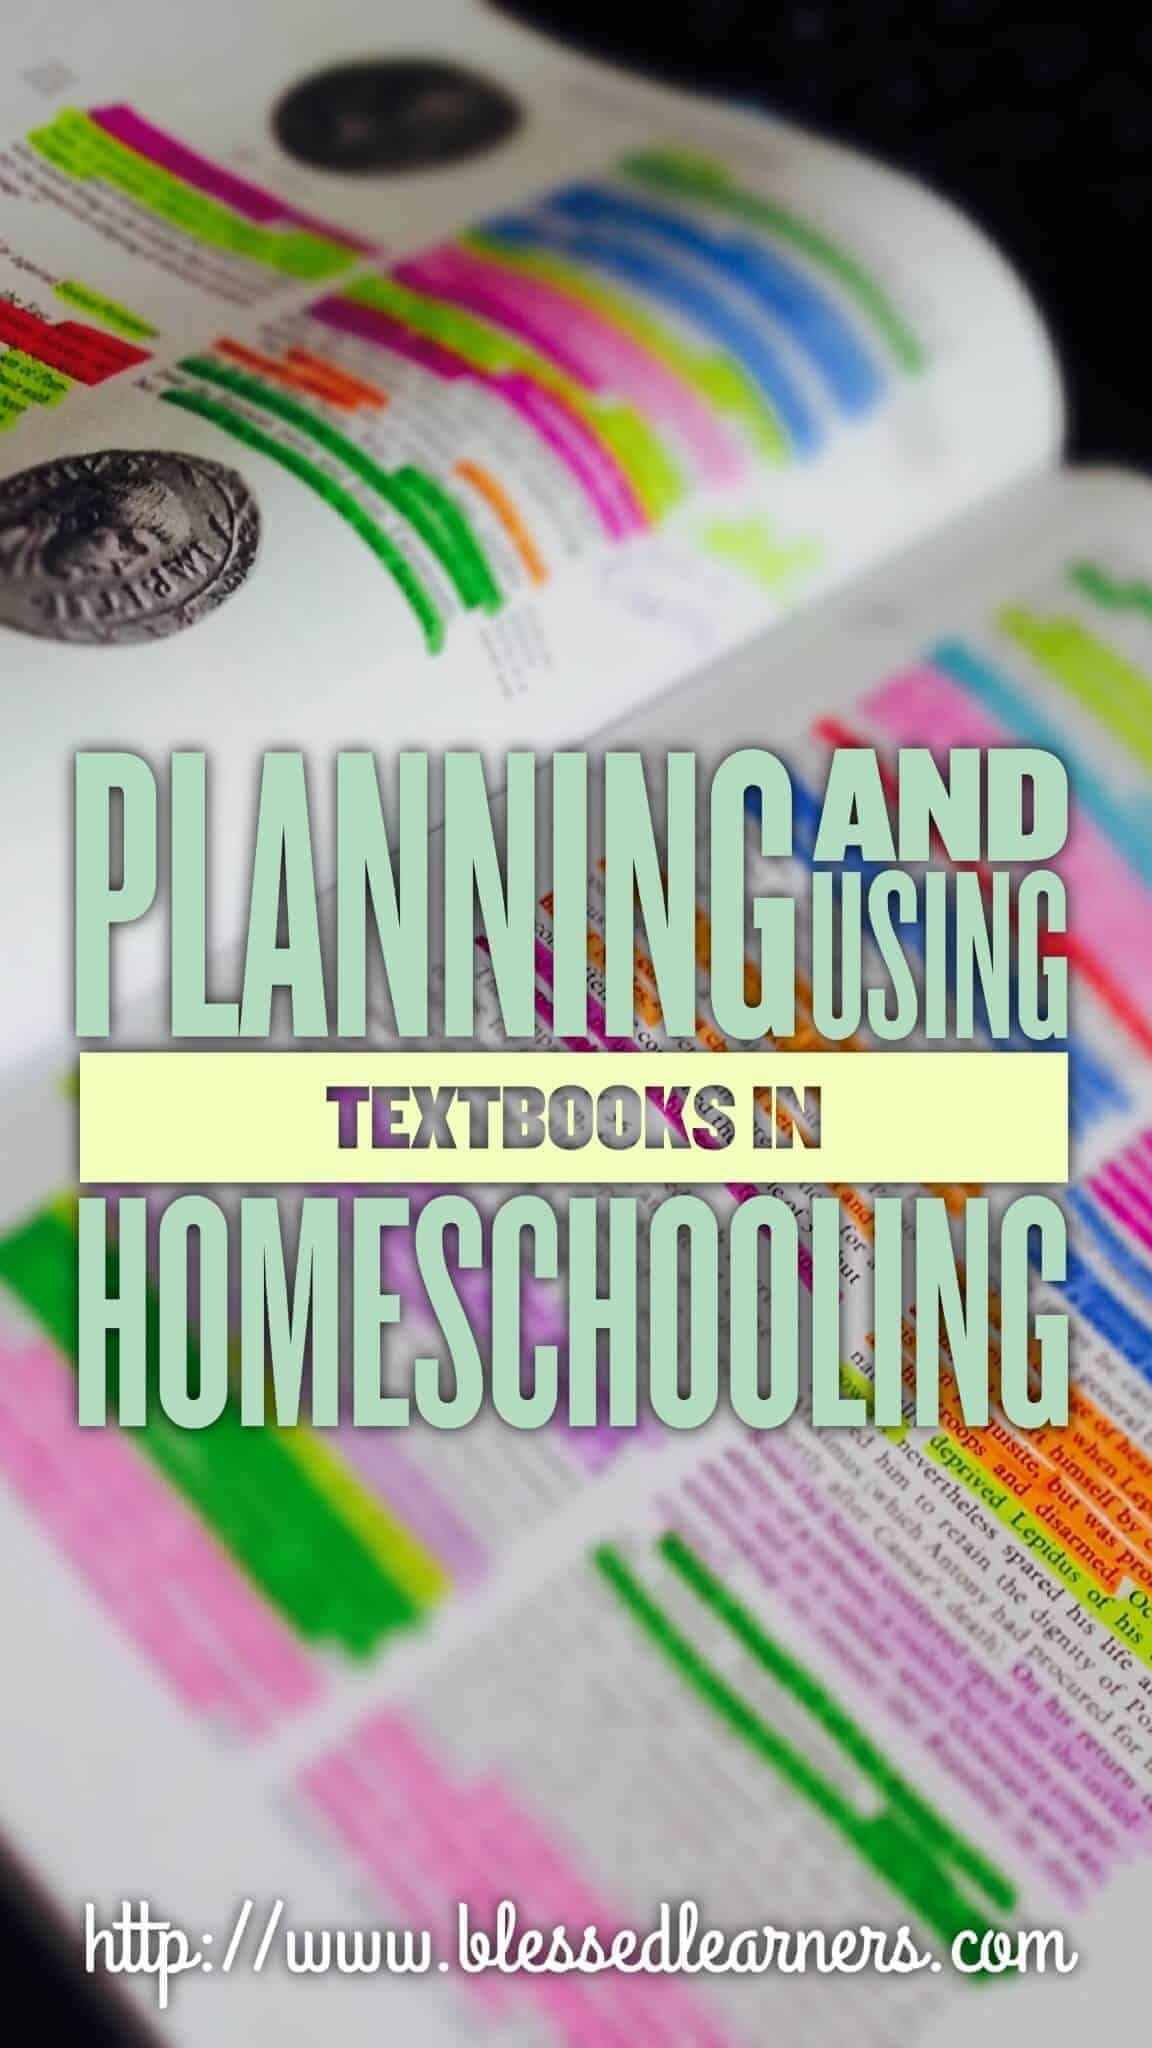 Planning and Using Textbooks in Homeschooling